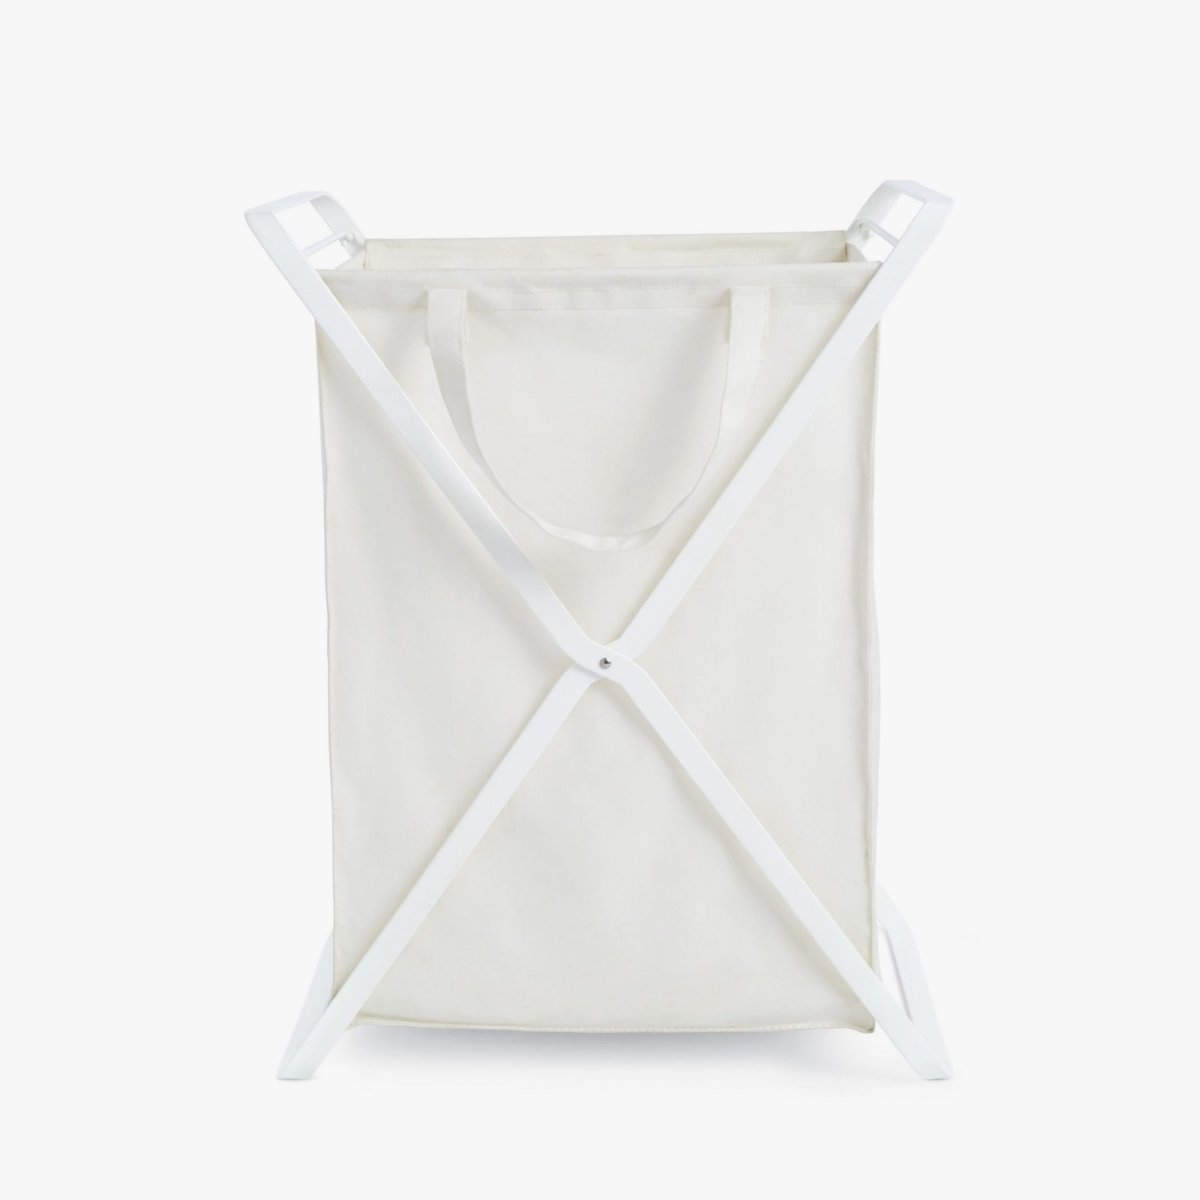 Tower Laundry Basket, L, white.